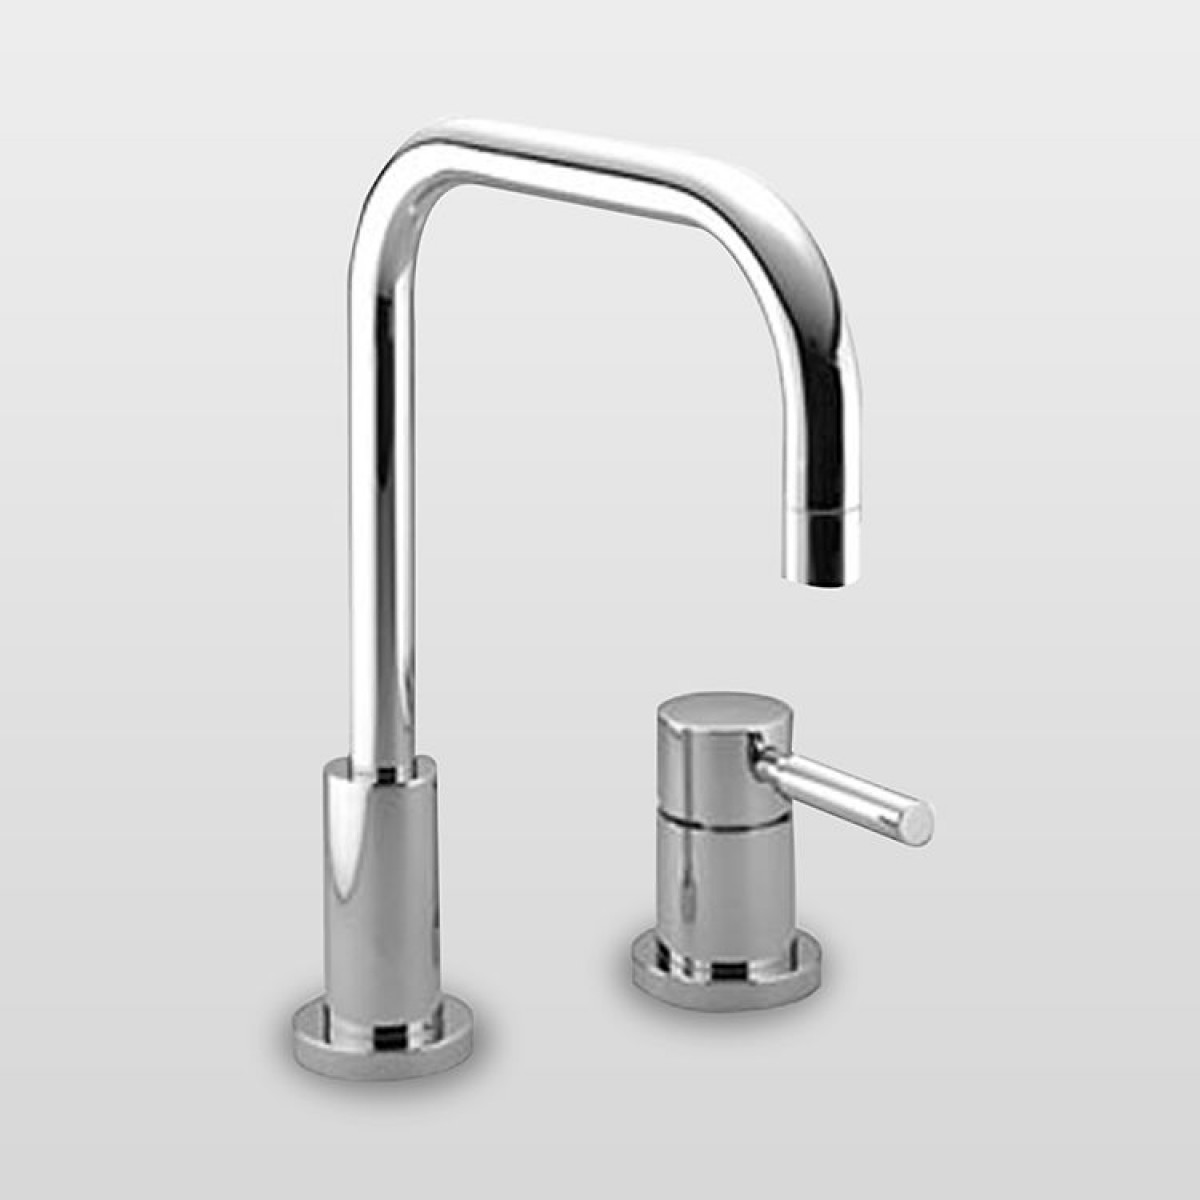 Duschsäule Grohe Kitchen Dornbracht Shower Heads Best Grohe Kitchen Faucet